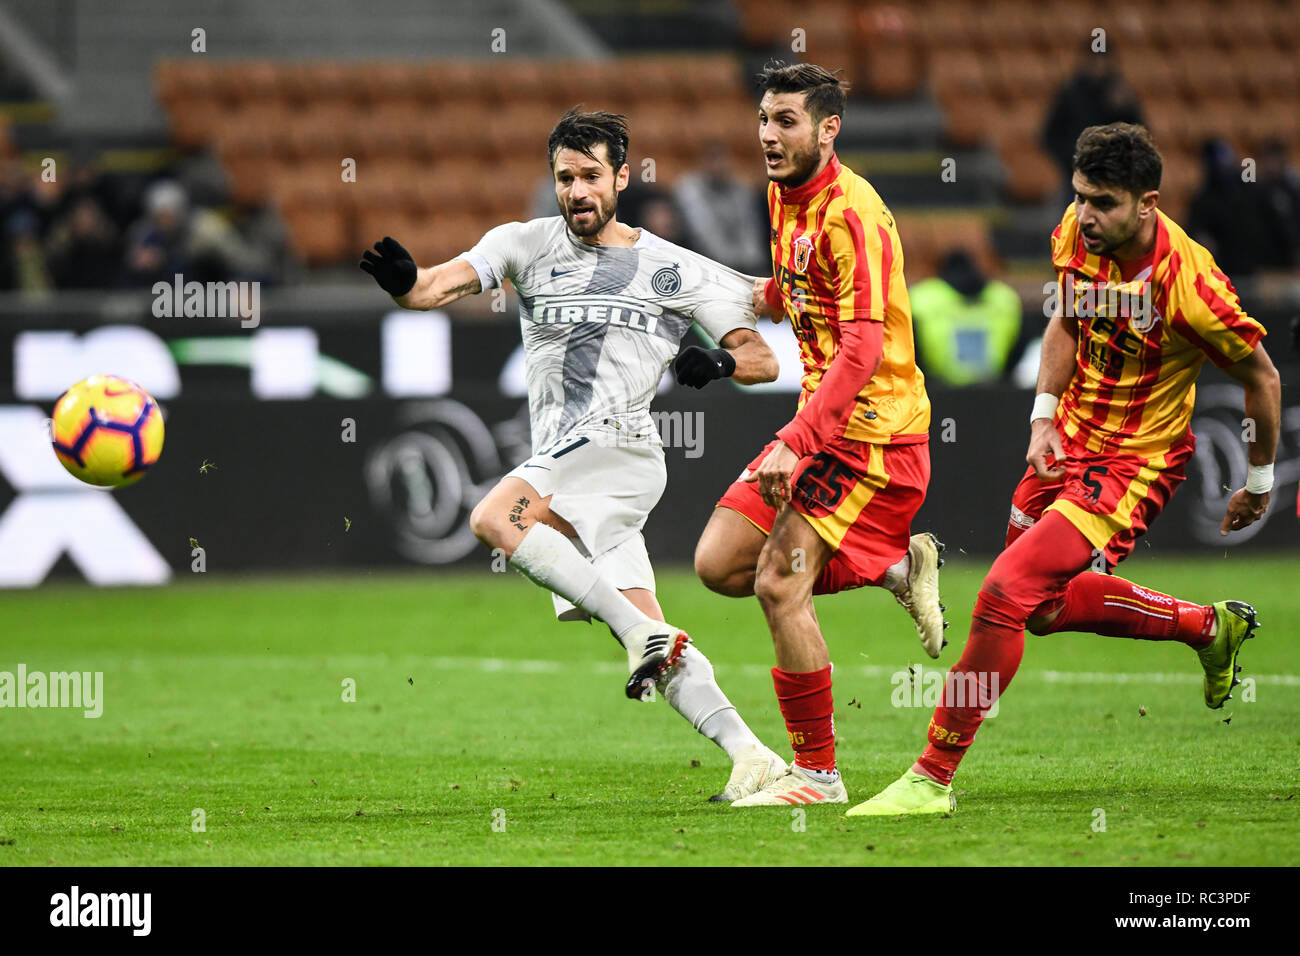 Milan, Italy. 13th Jan 2019. Midfielder Antonio Candreva (Inter) scores during the Italian Cup 'Coppa Italia' football match, Inter Milan vs Benevento Calcio at San Siro Meazza Stadium in Milan, Italy on 13 January 2019. The football match is played behind closed doors after Napoli's Senegalese player Kalidou Koulibaly was subject to racist chants by FC Internazionale's 'ultra' fans during the Boxing Day match. Credit: Piero Cruciatti/Alamy Live News - Stock Image